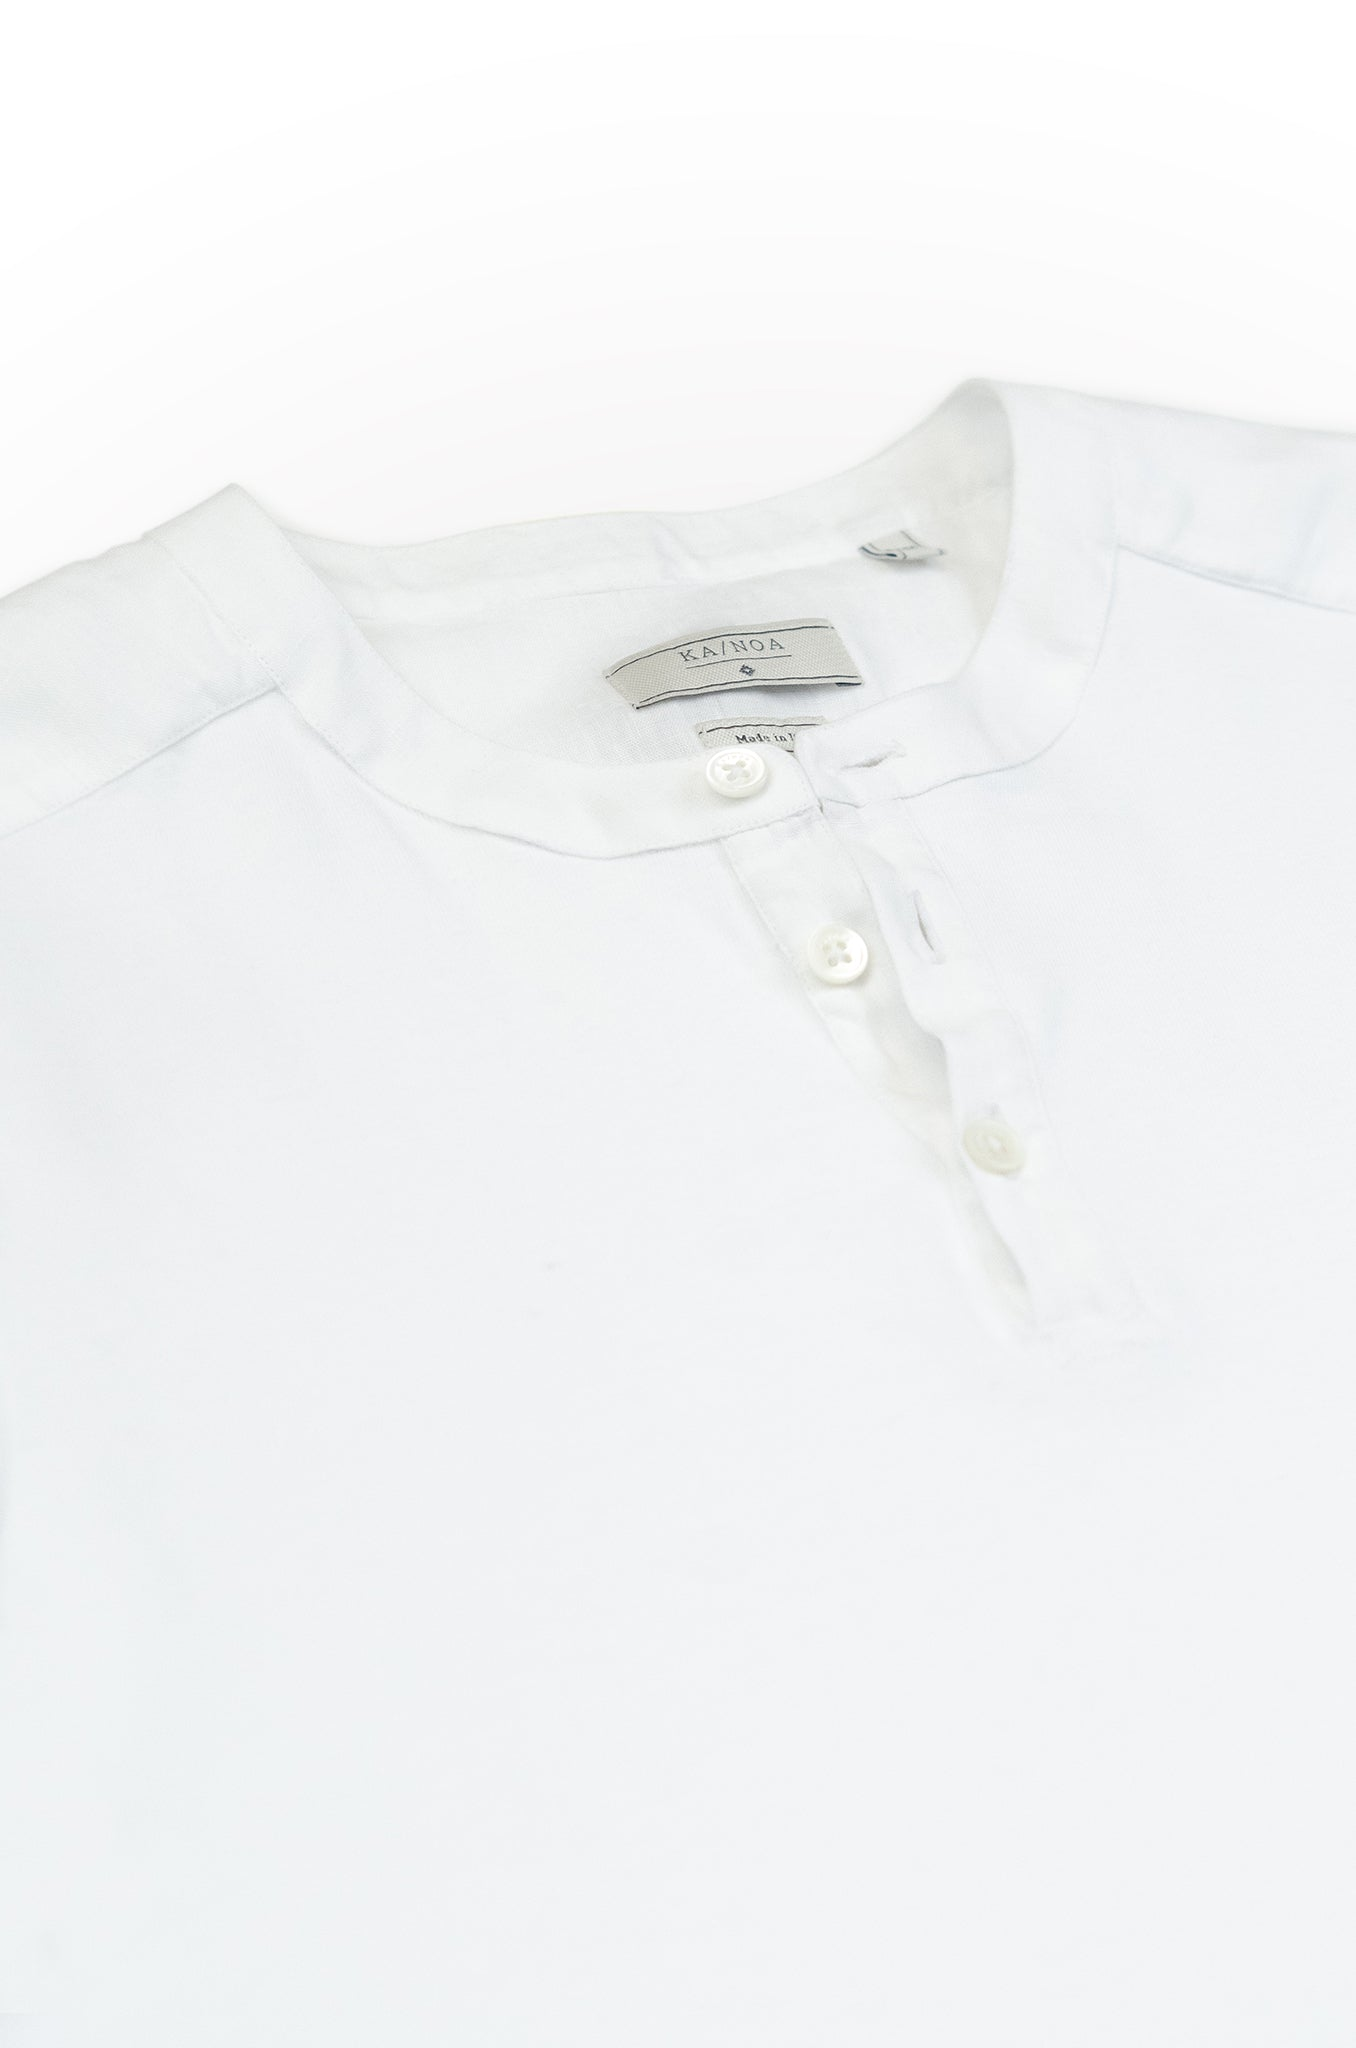 Marc t-shirt in heavy cotton jersey (natural white)